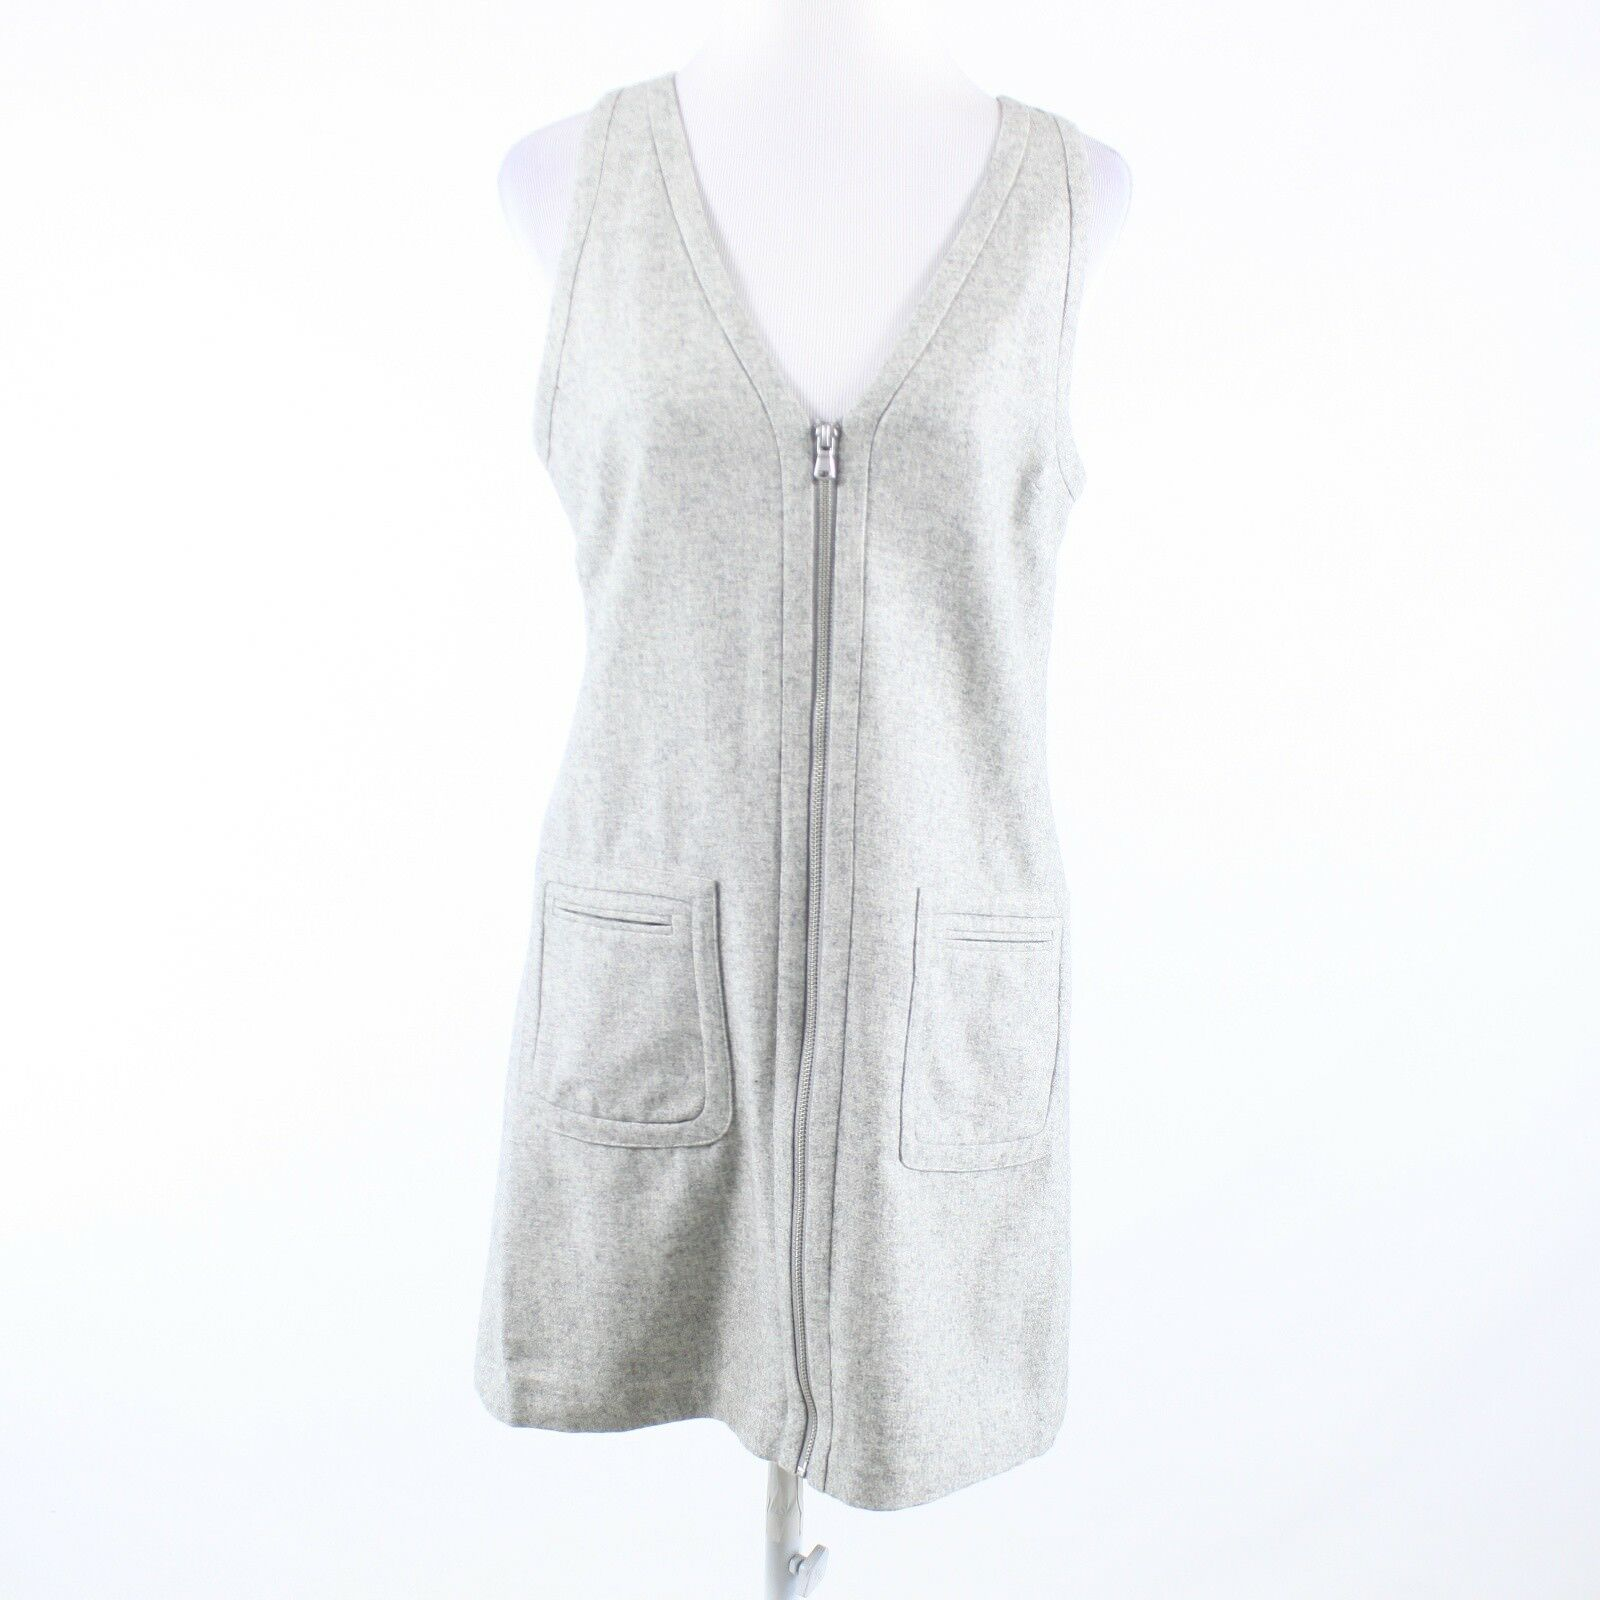 Heather gray wool blend MINT VELVET sleeveless sheath dress 10 38 NWT $136.18-Newish